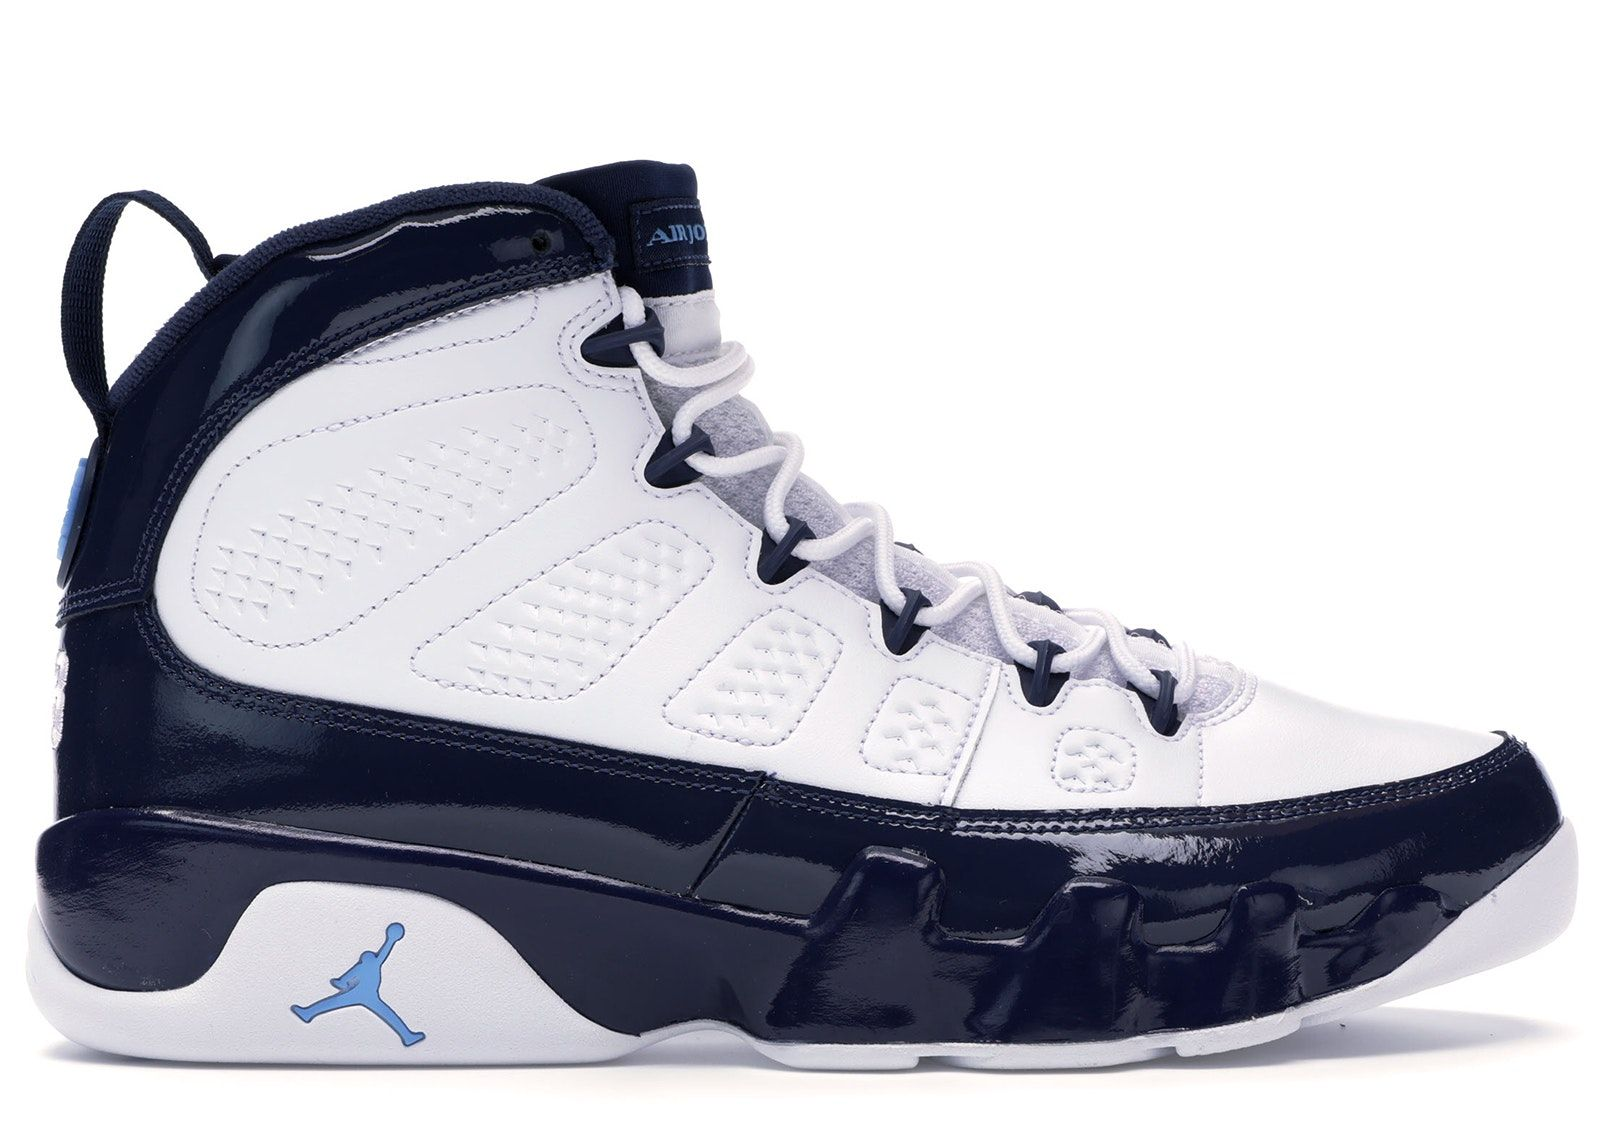 I just listed an Ask for the Jordan 9 Retro Pearl Blue on StockX 236e16b0bbc2